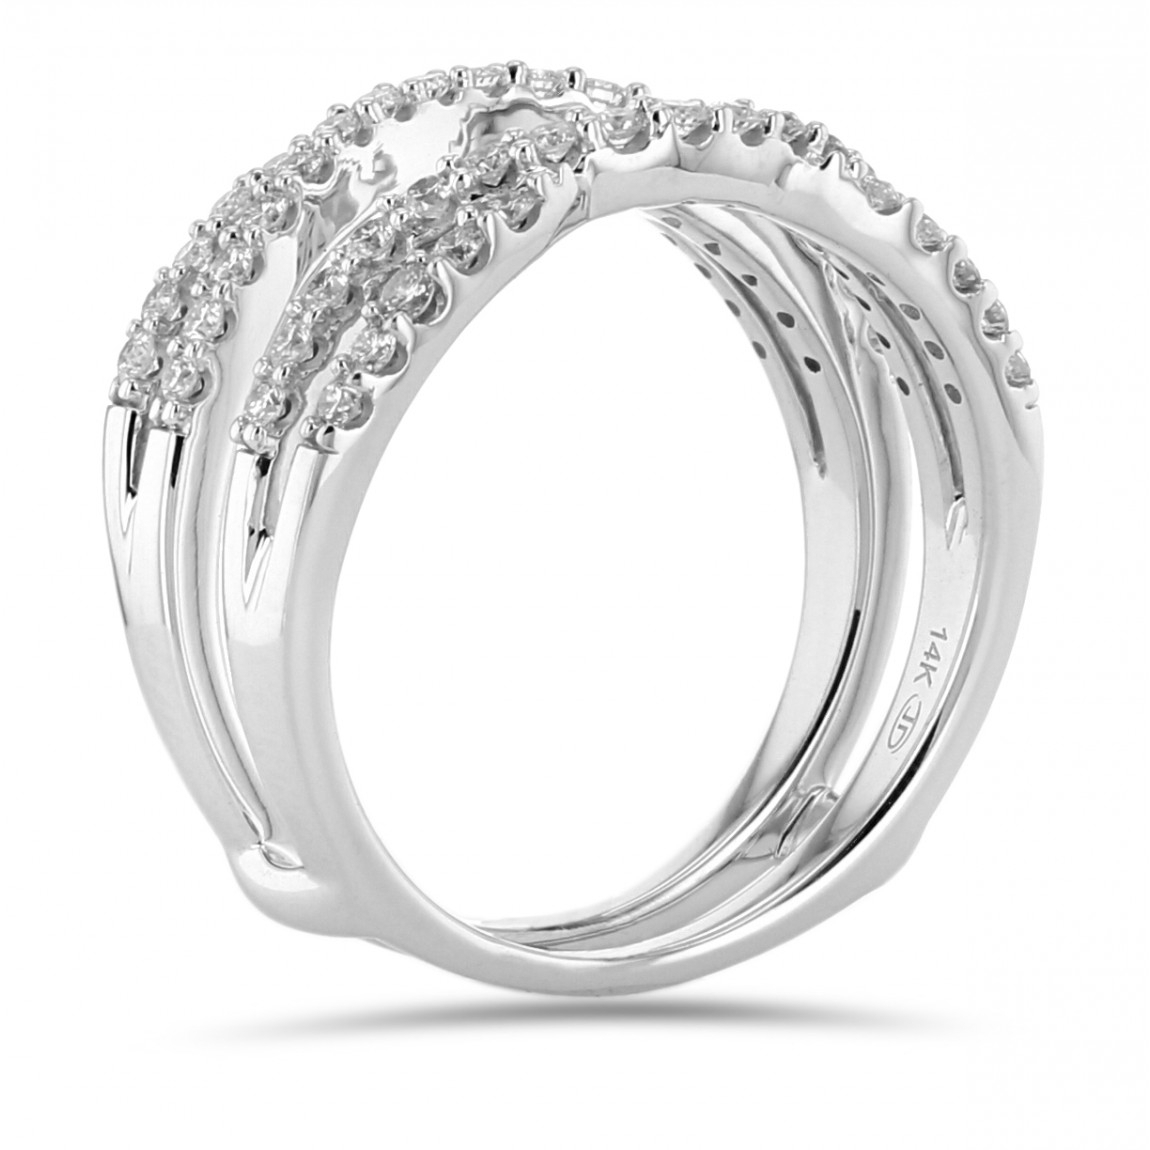 Diamond Cradle Wedding Band, Ring Enhancer, Pavé Waves, 14k White Gold, (View 5 of 25)